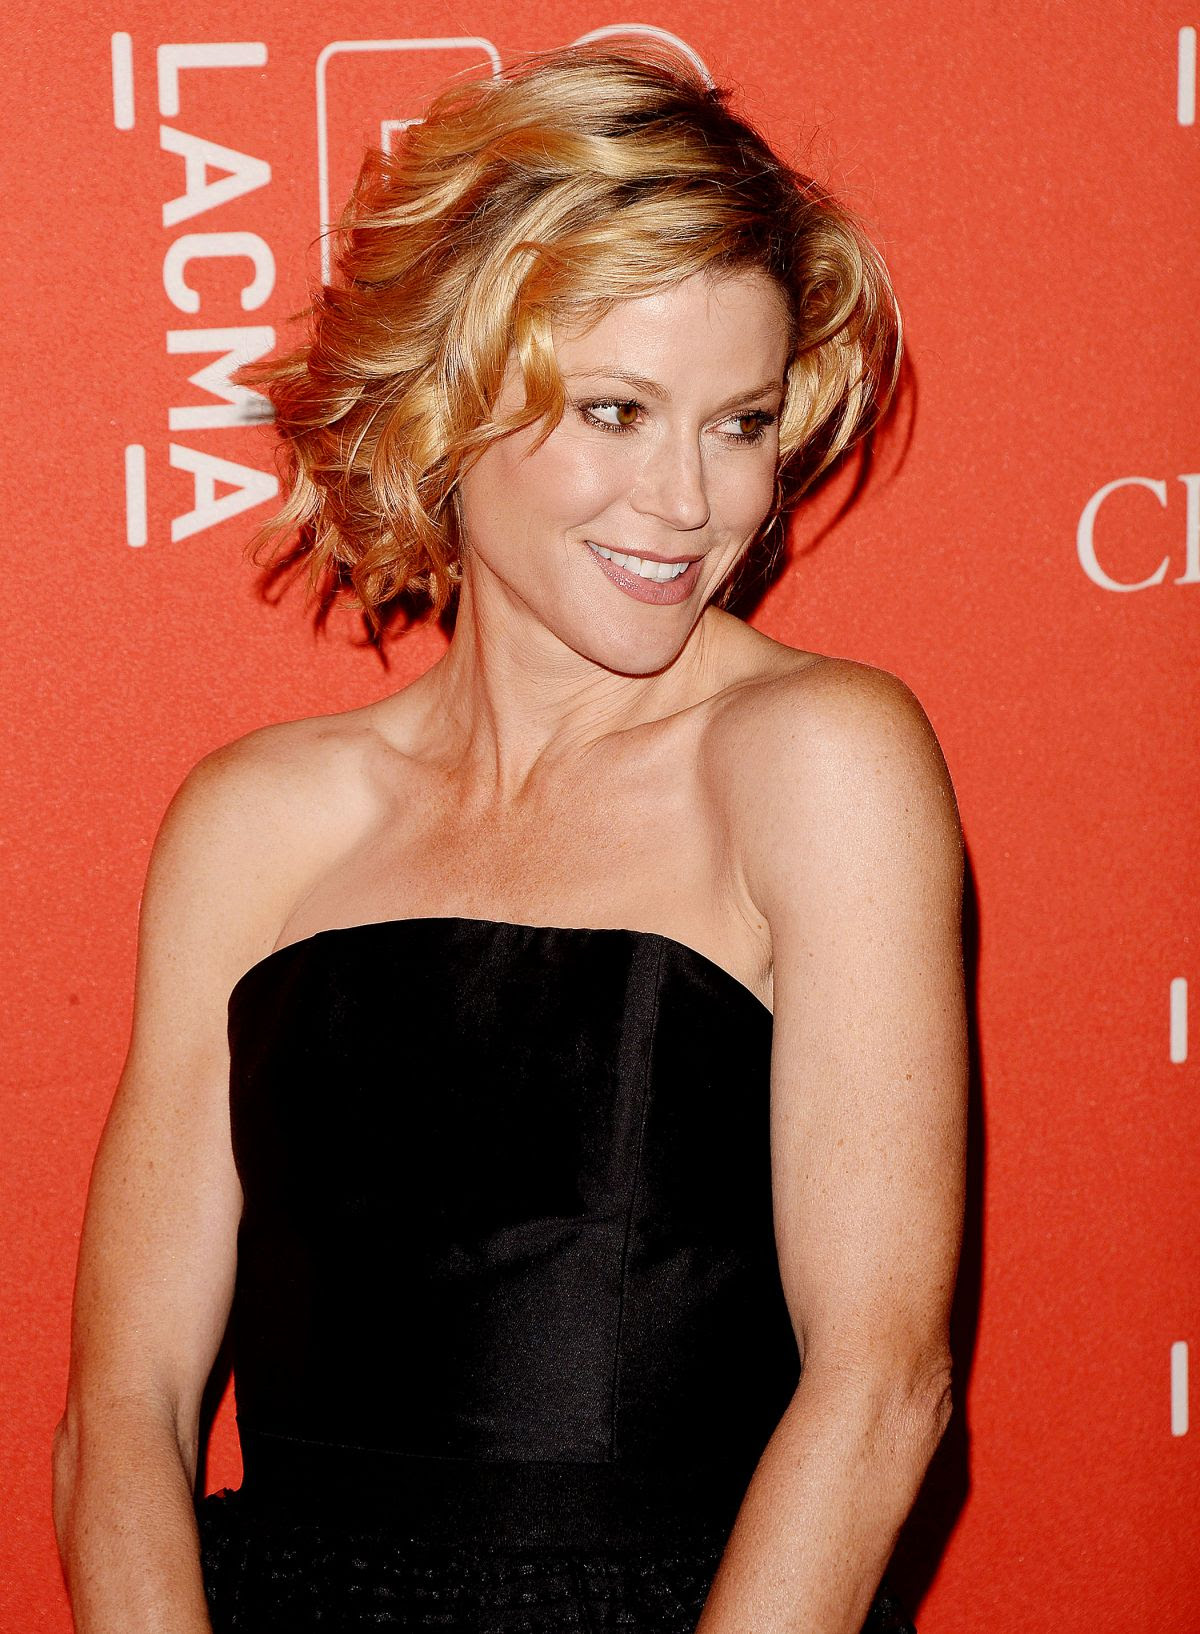 JULIE BOWEN at Lacma